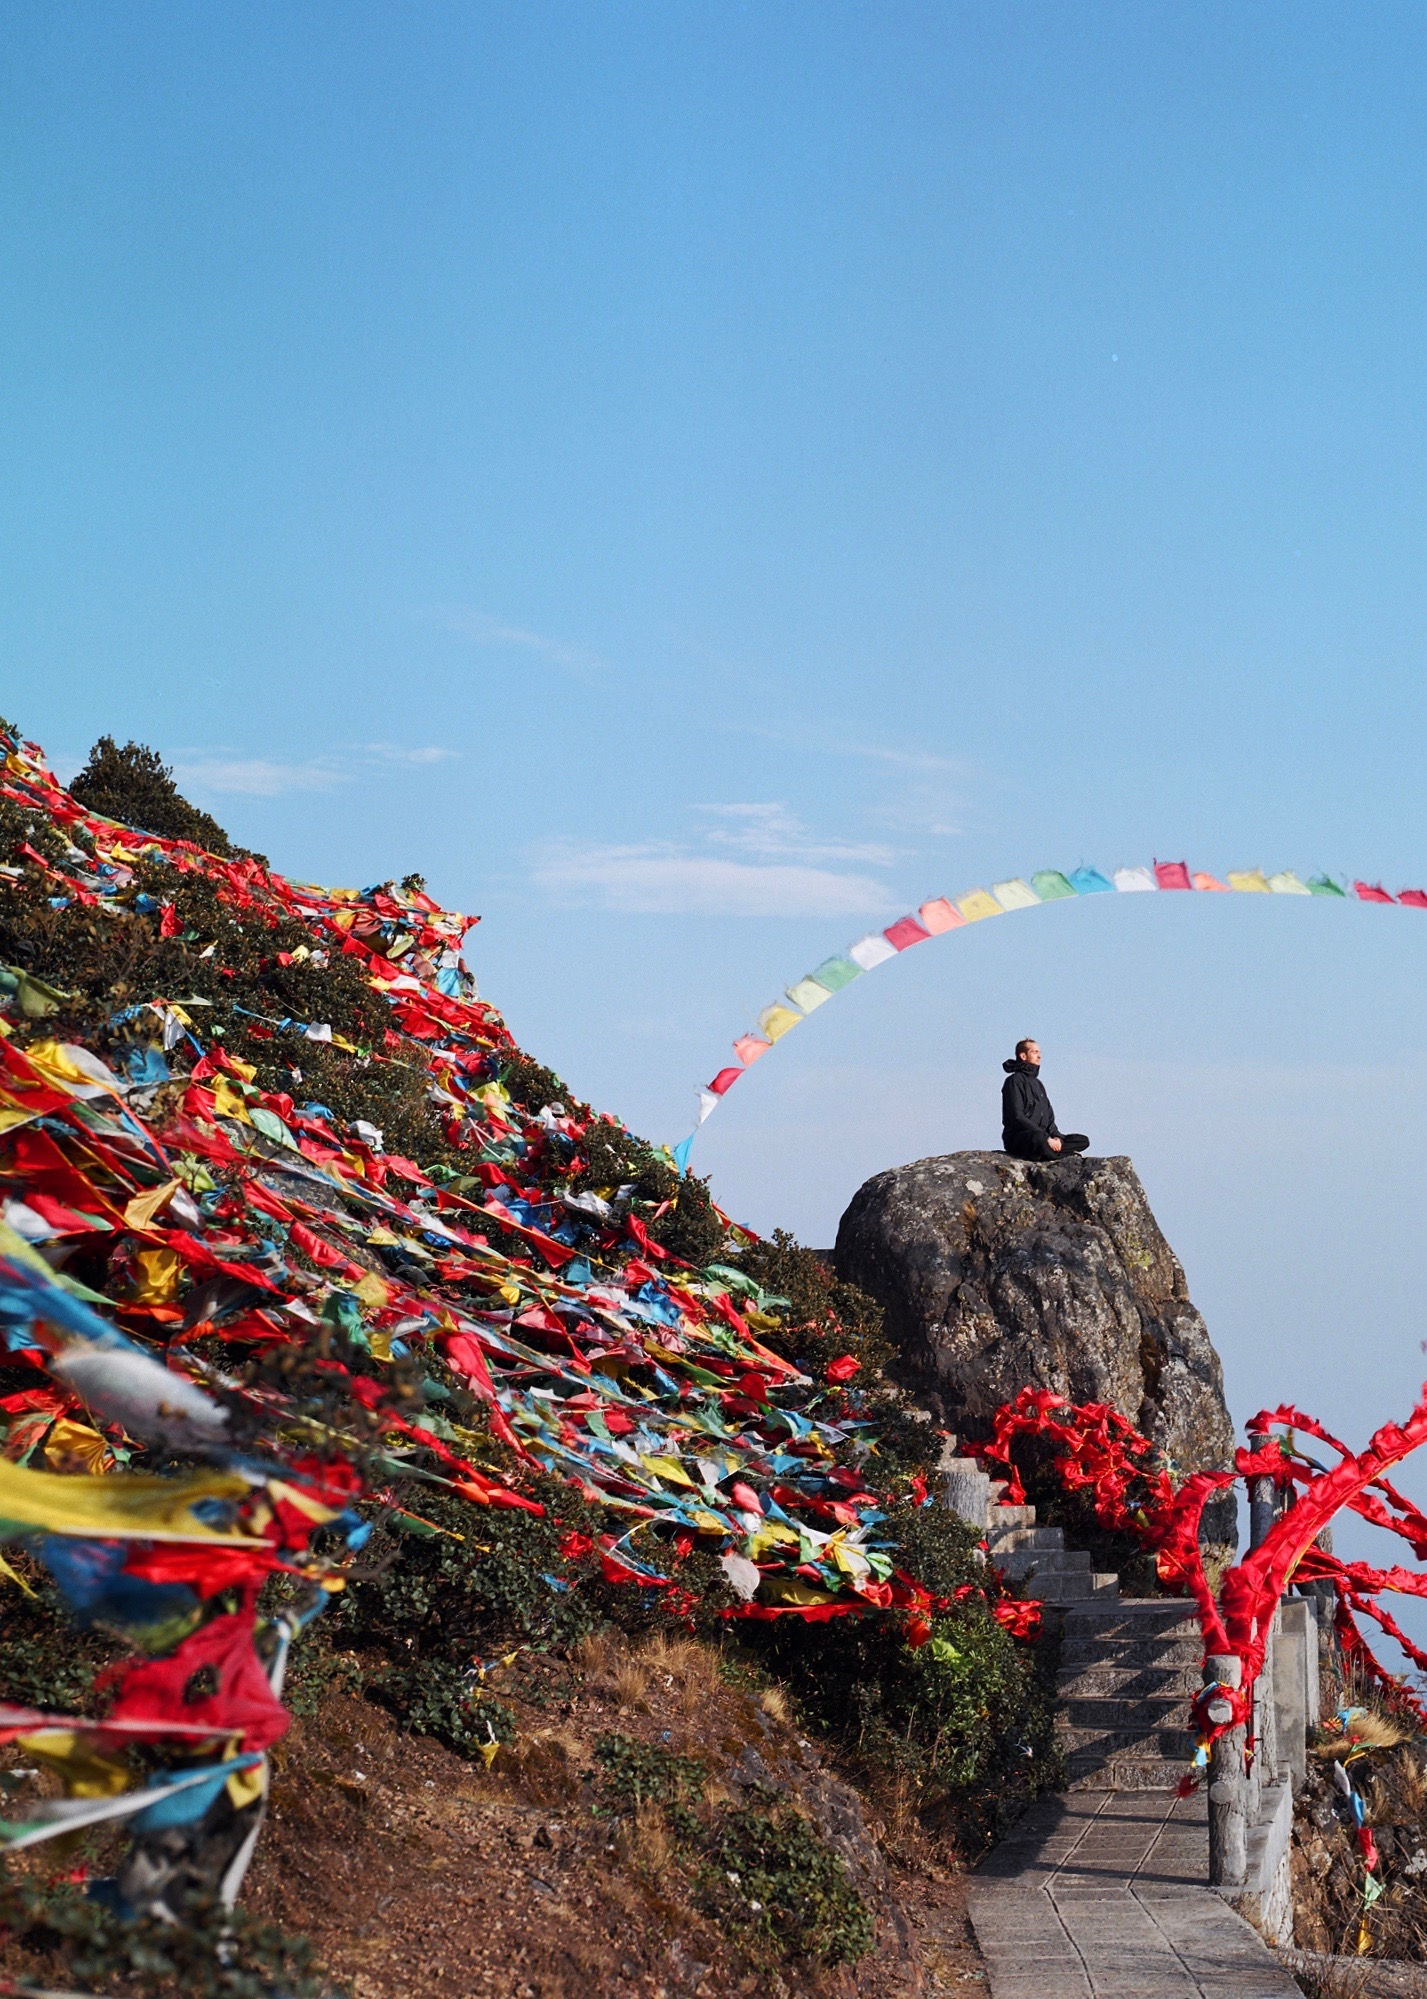 Prayer flags catch the breeze at a mountain temple (Yunnan, China)   Photo credit: Chip Roundtree